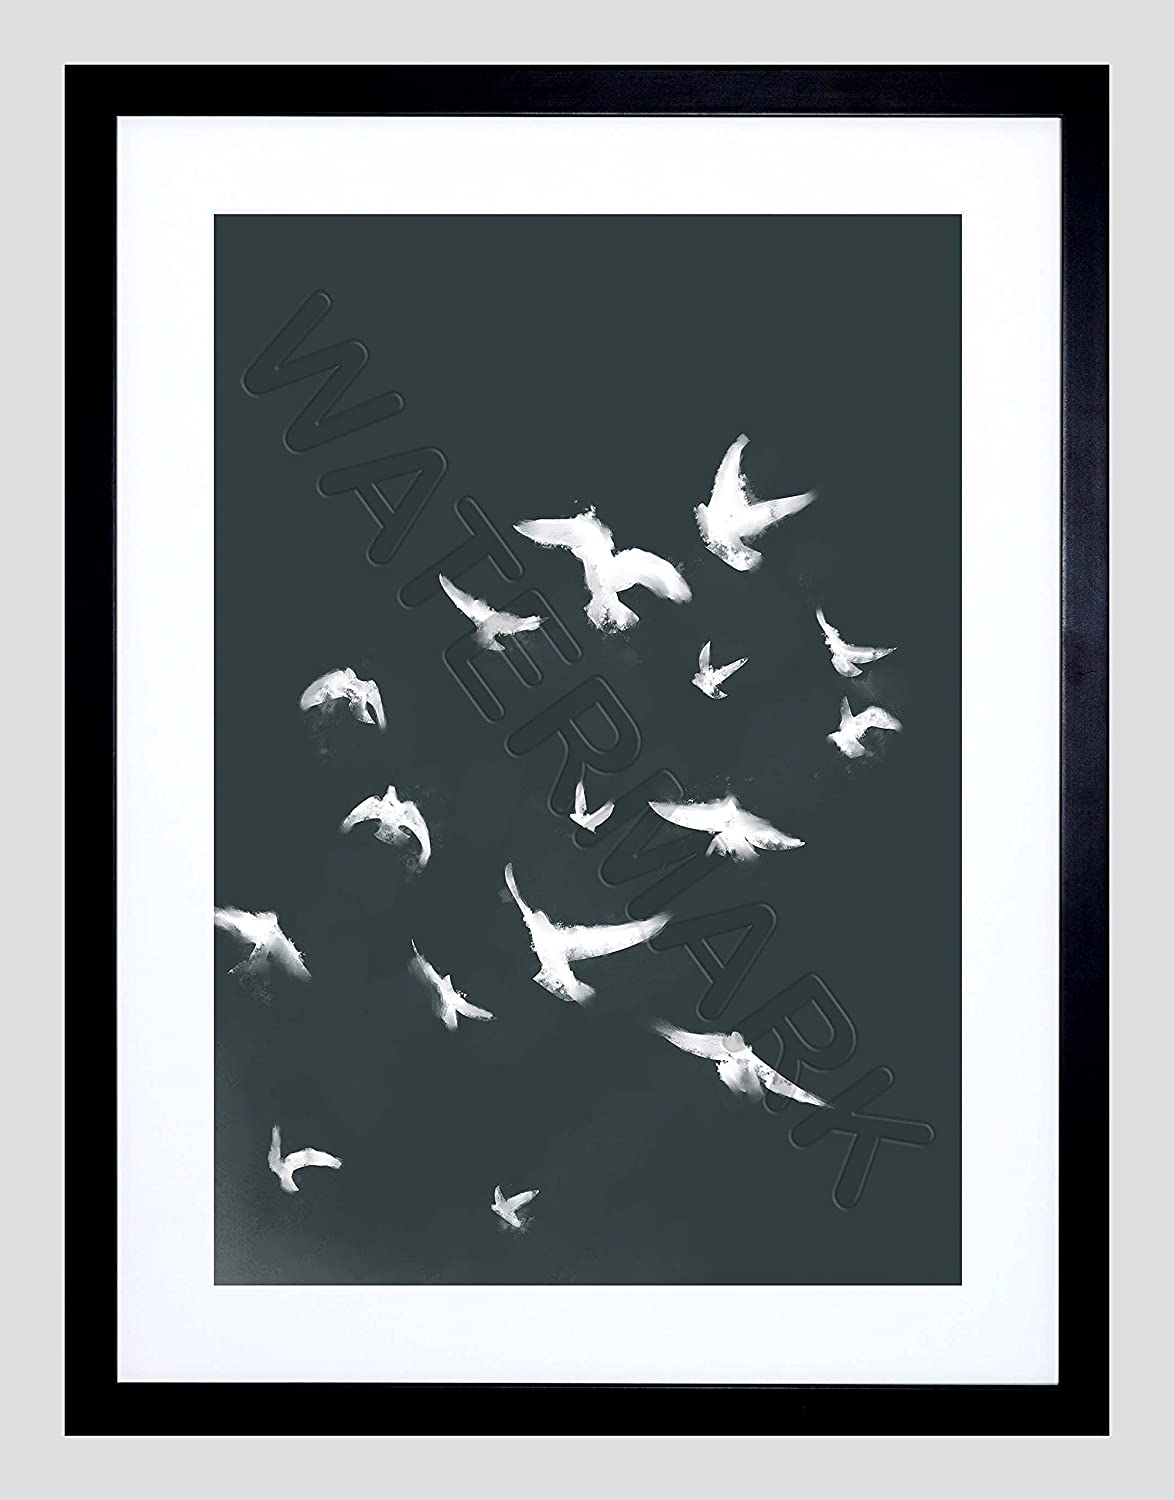 Amazon.com: Flock Of Birds Silhouette Black White 12x16 Framed Art Print F12x12095: Posters & Prints